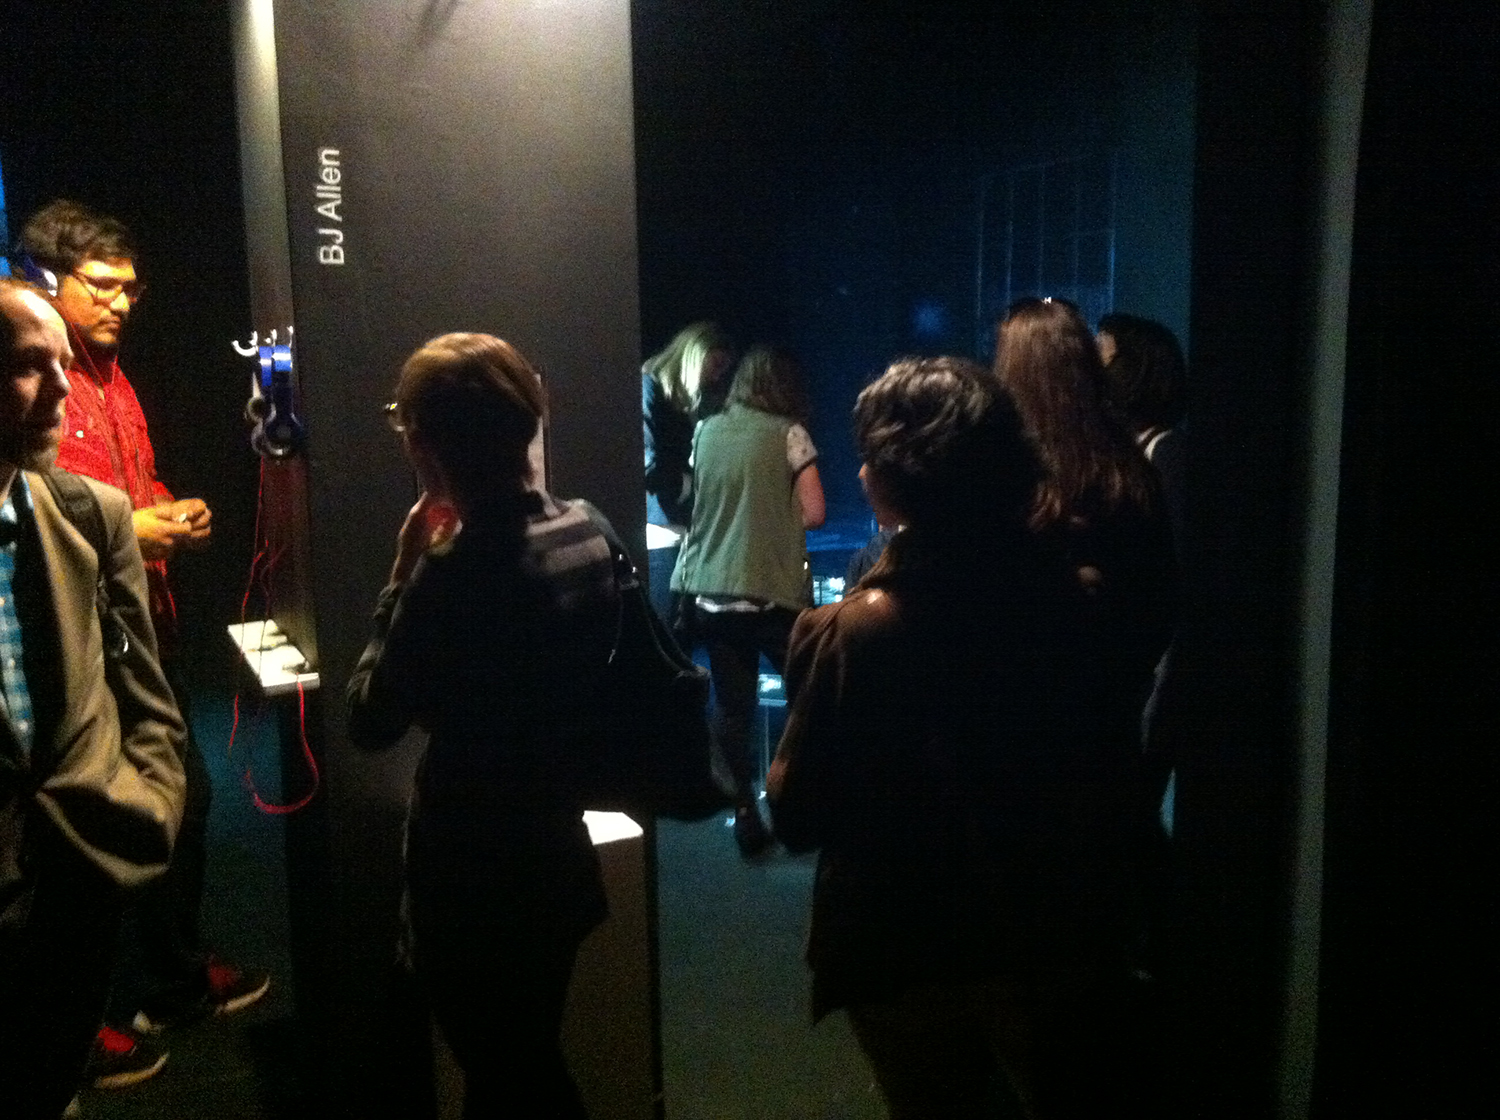 Viewers at the opening.